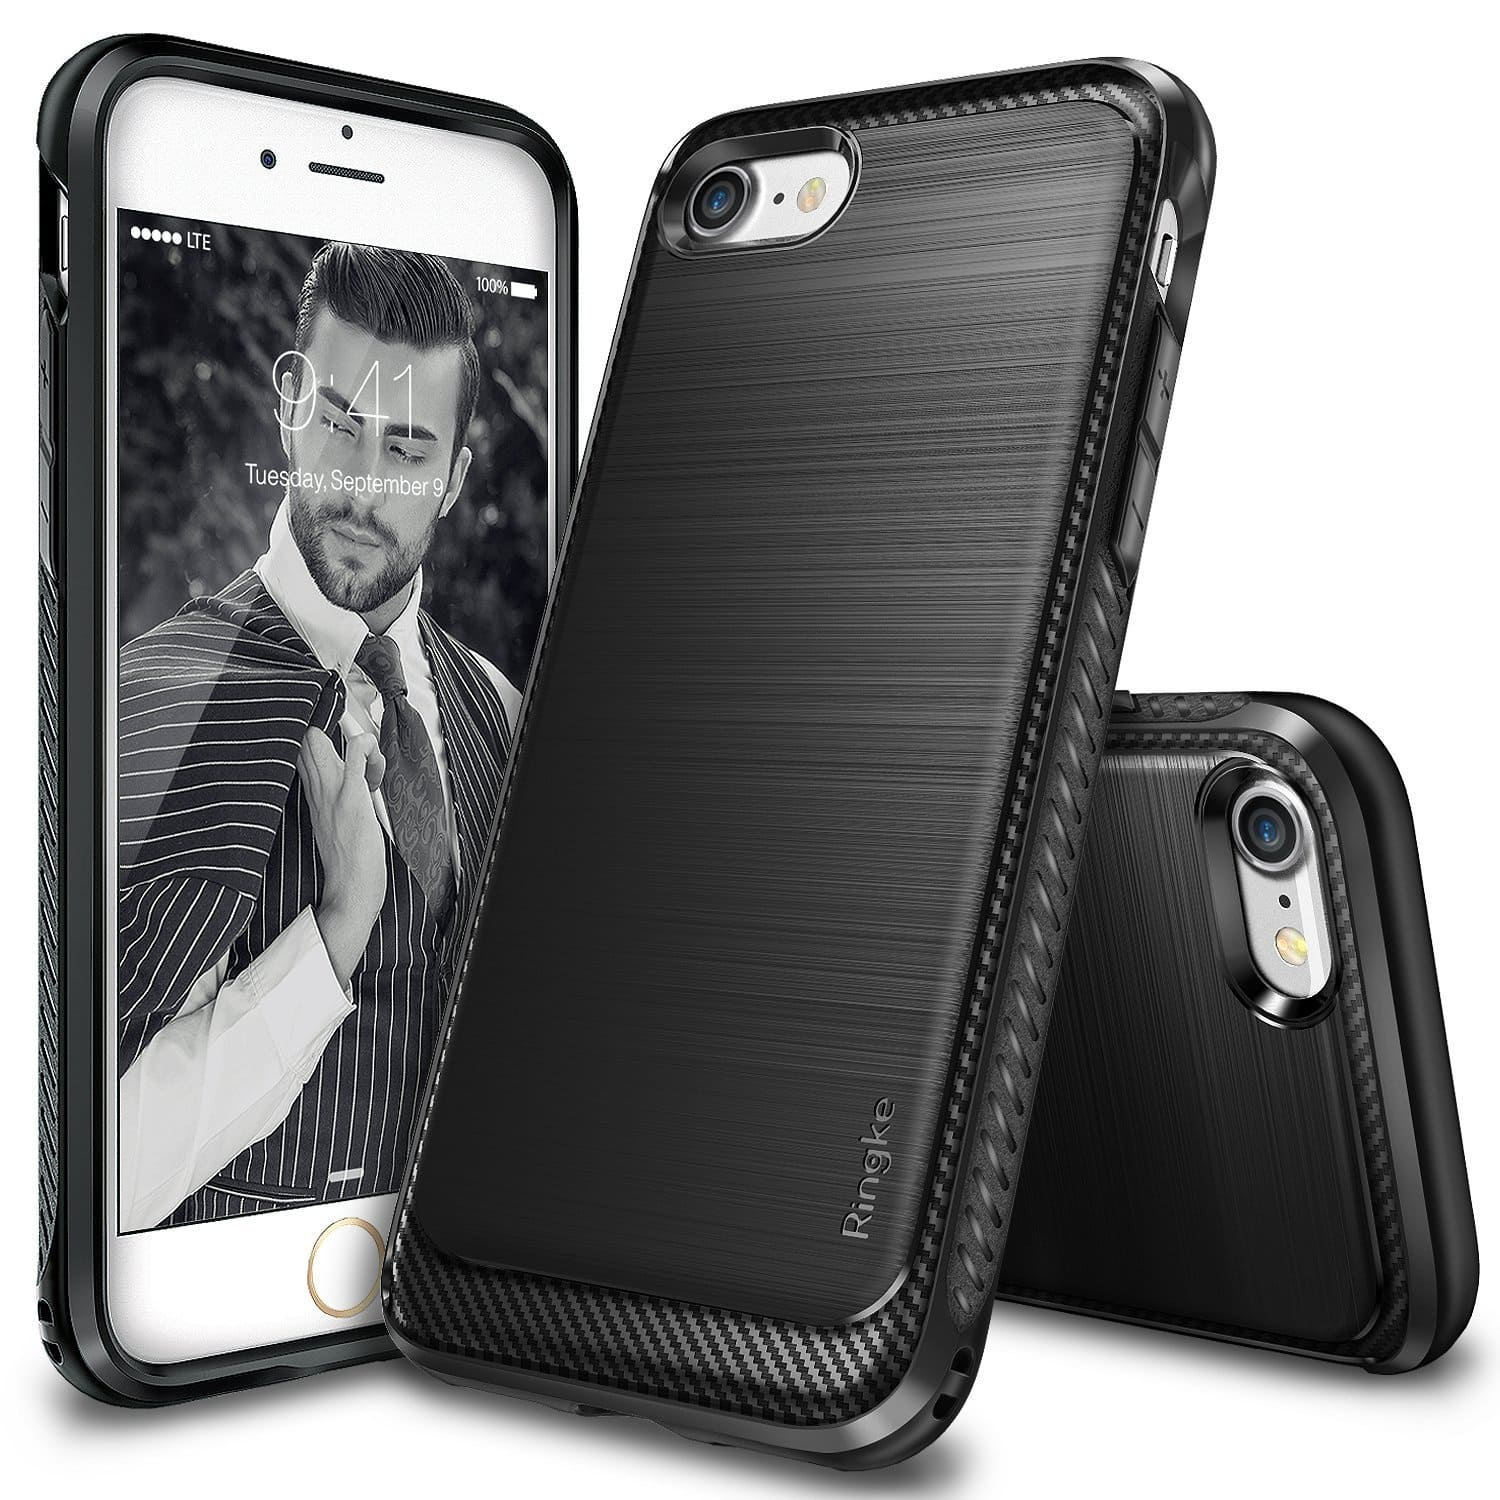 Ringke Case for iPhone 7 and iPhone 7 Plus $3.99 + Free Shipping w/ Prime or FSSS